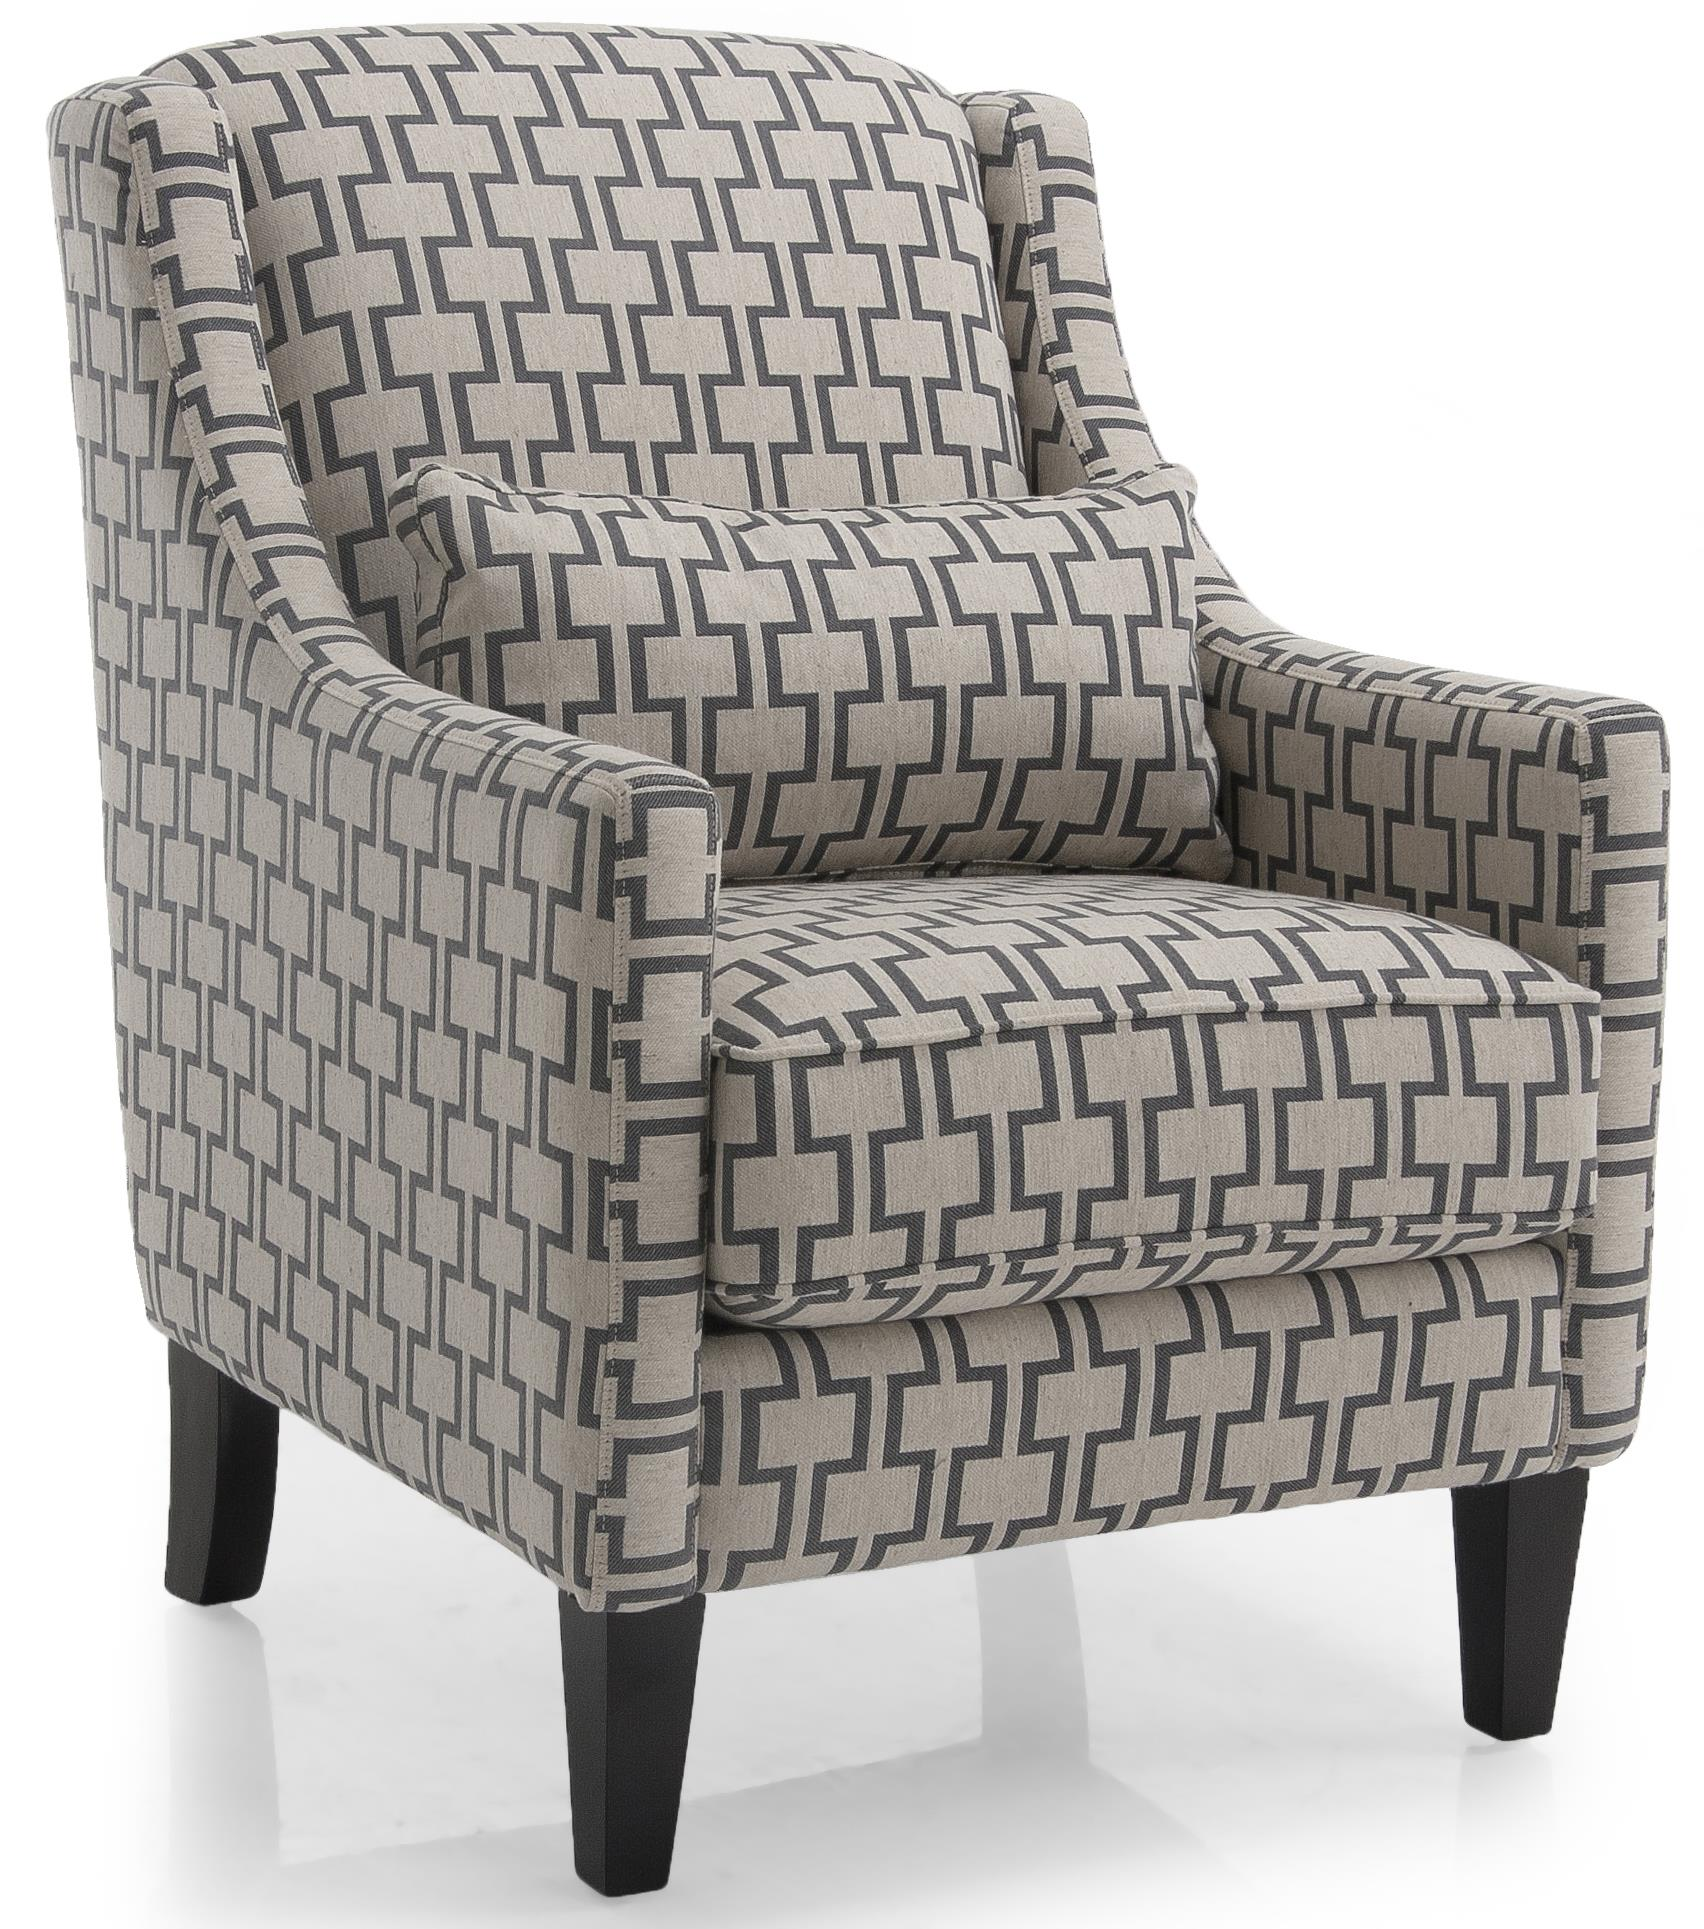 Bella Chair by Taelor Designs at Bennett's Furniture and Mattresses